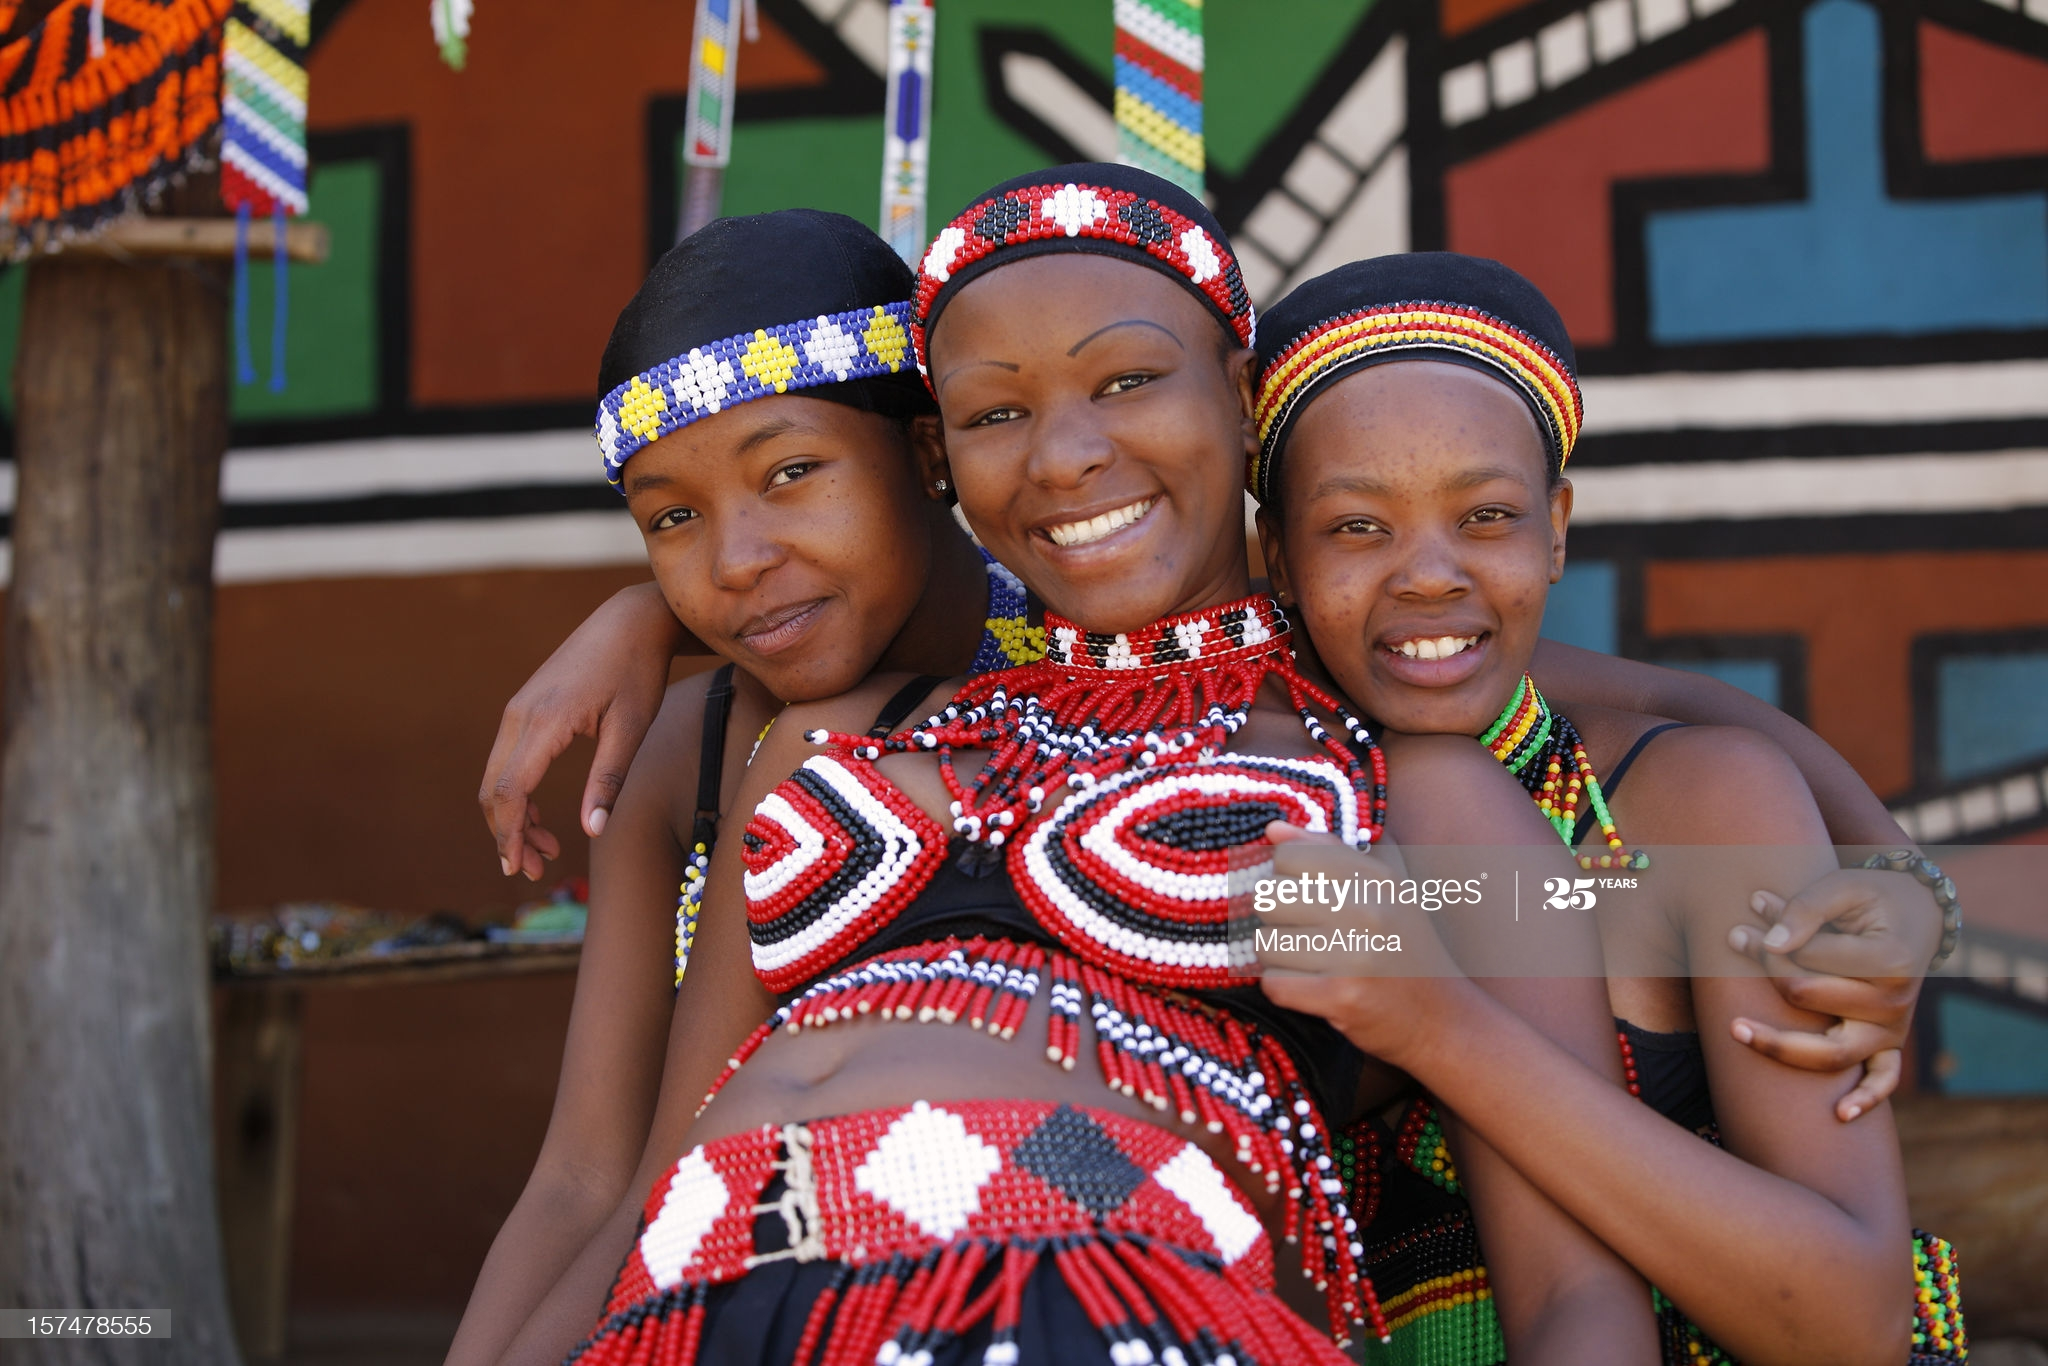 Three young Zulu women friends, dressed in traditional beaded Zulu garments, pose happily for the camera. The Zulu tribe is found mainly in Kwazulu-Natal, South Africa.